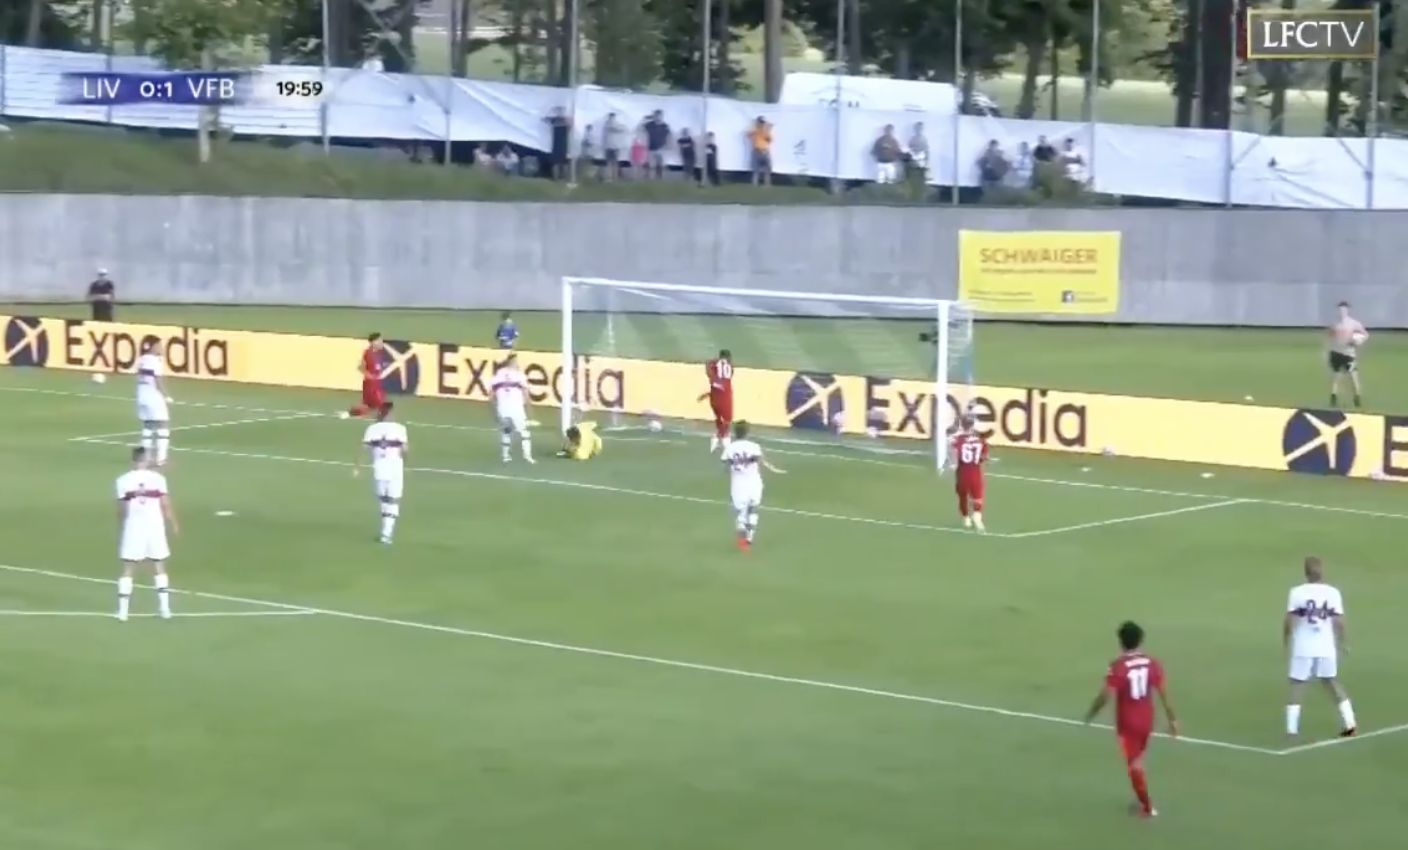 Video: Mane with the close-range finish to equalise for Liverpool against Stuttgart